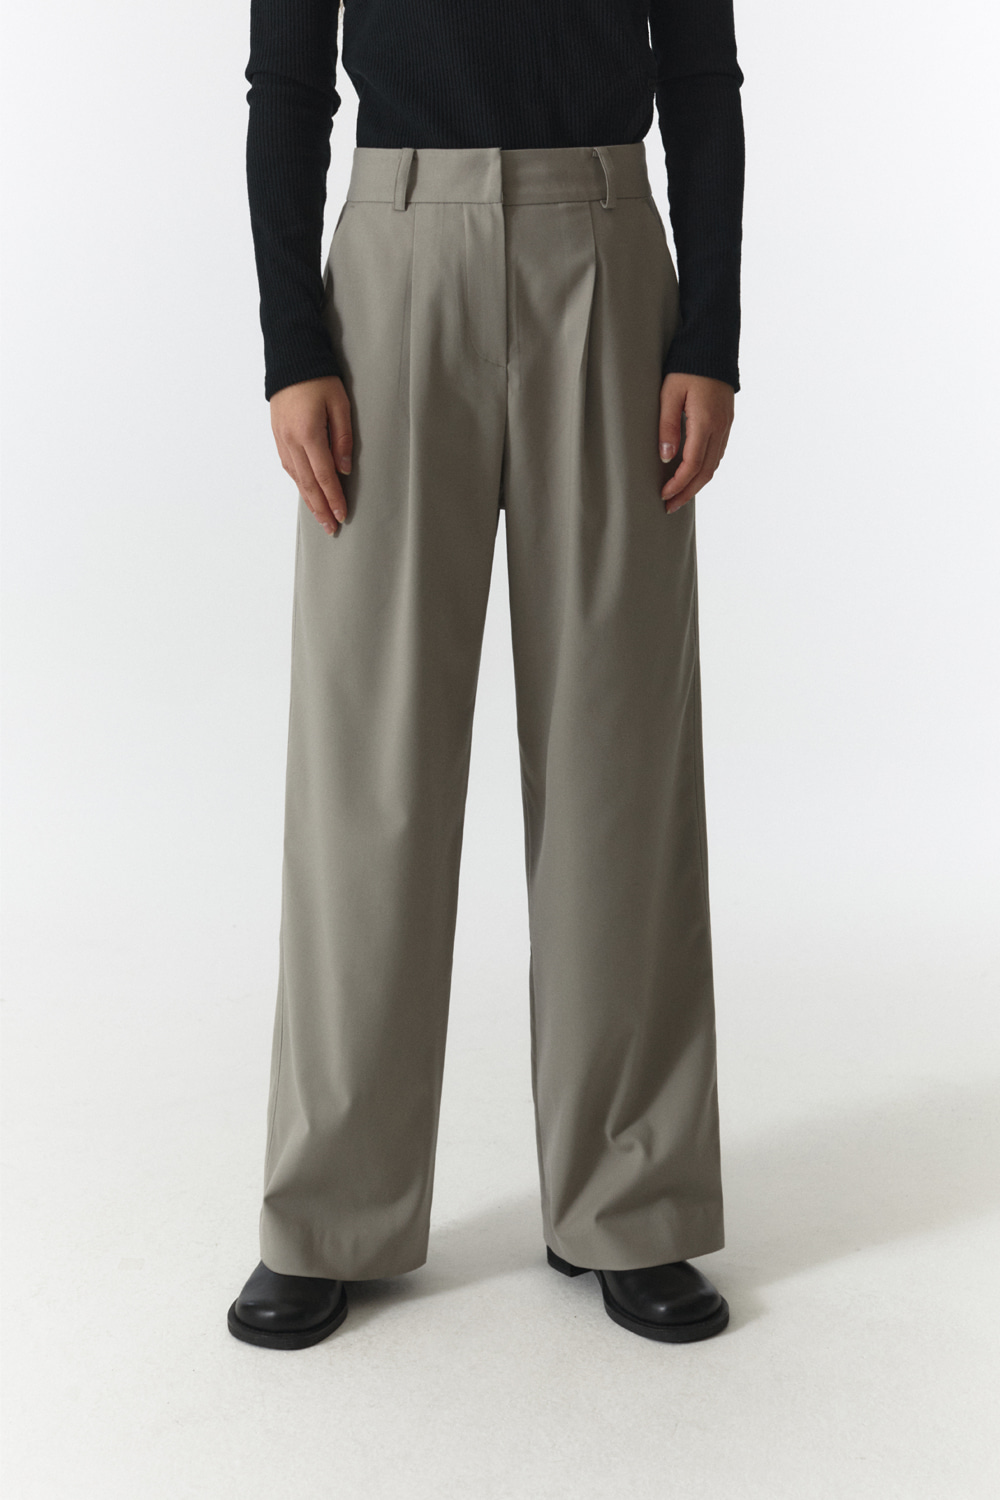 Over Pants Women JA [Sand Gray]